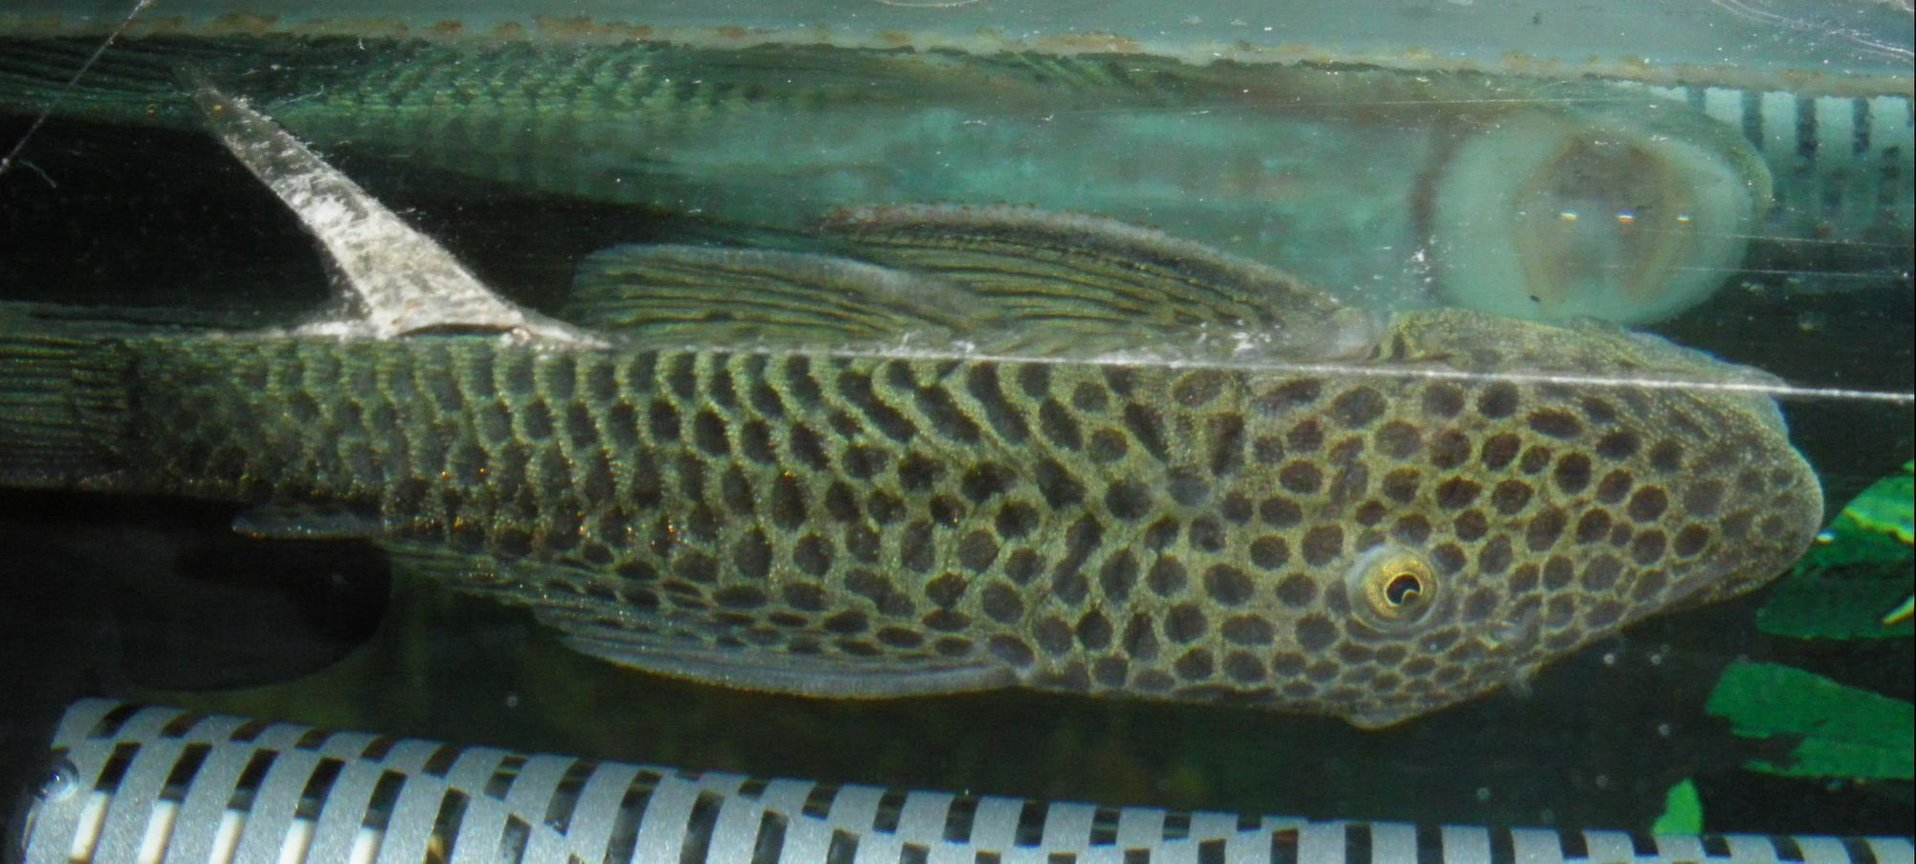 freshwater fish - chaetostoma milesi - rubbernose pleco (l187) stocking in 55 gallons tank - Rubber Nosed Pleco - Rover